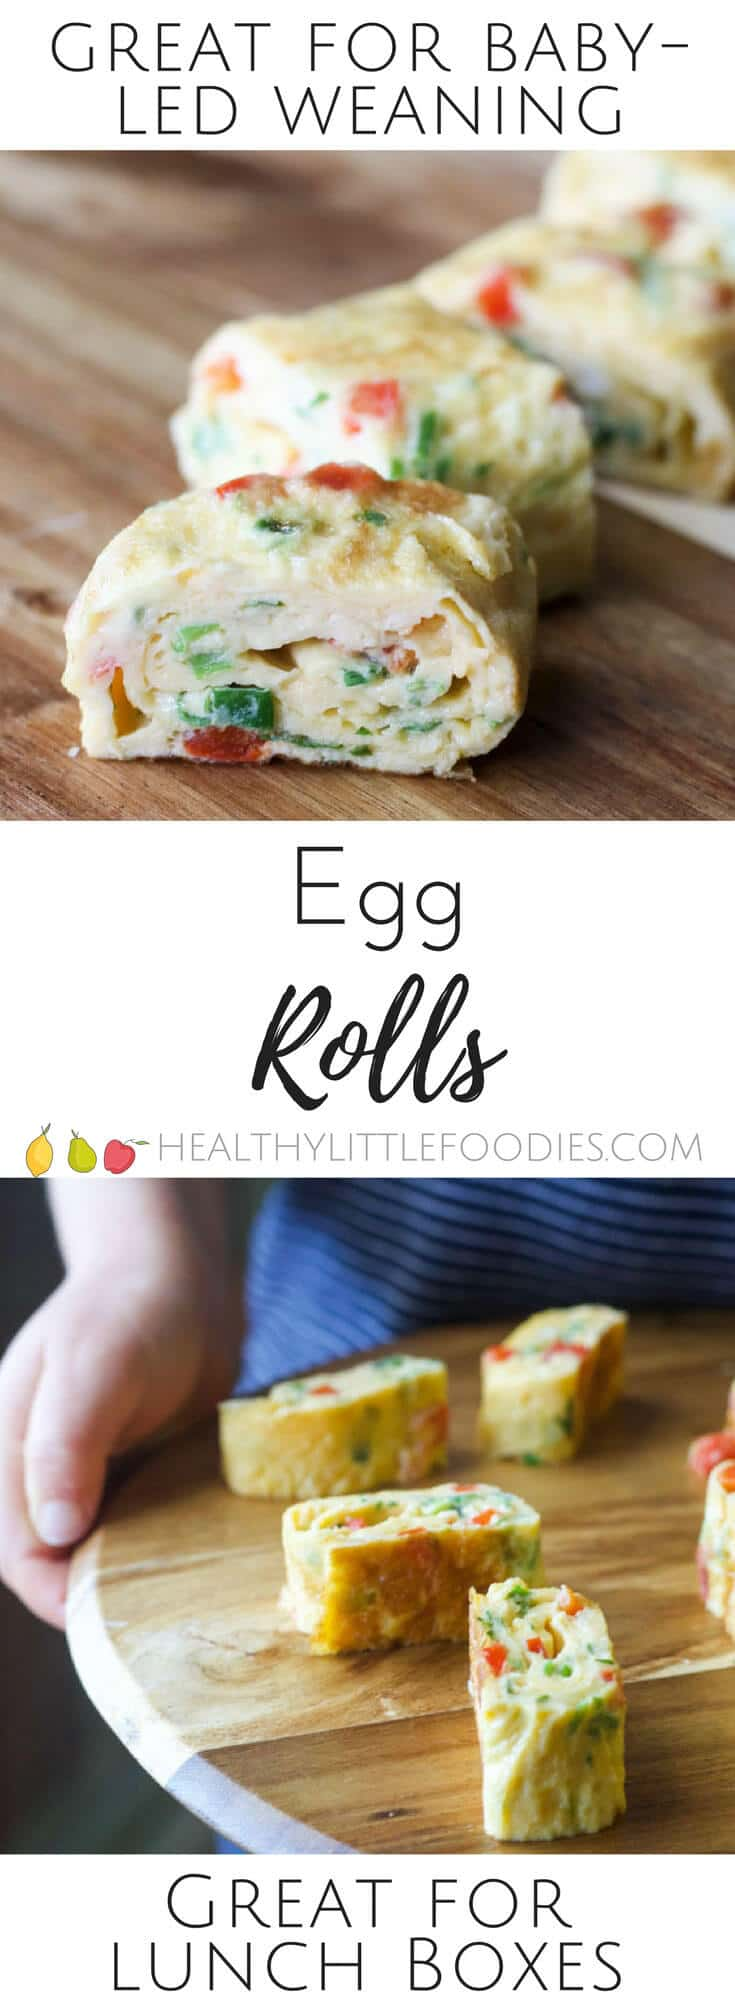 Little egg rolls are a perfect finger food for kids. Great for baby-led weaning or for adding to a lunch box. A dd your favourite omelette add ins.